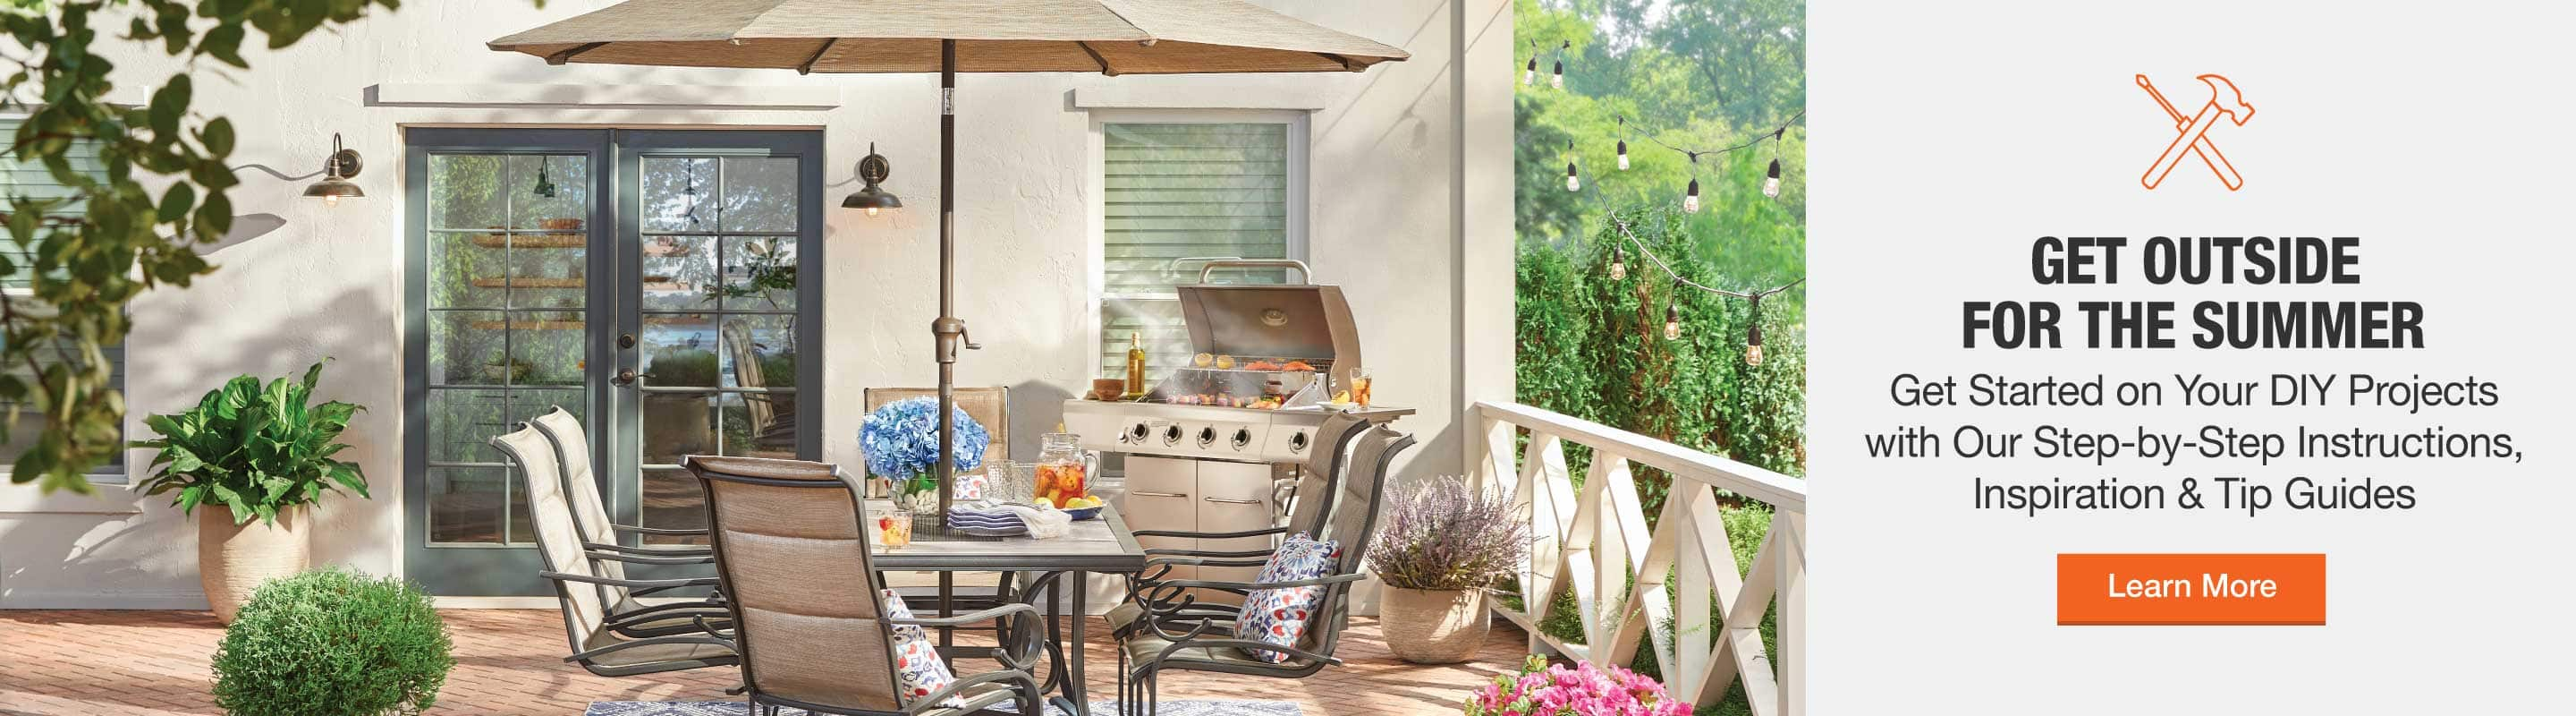 Get outside for the summer and get started on your DIY projects